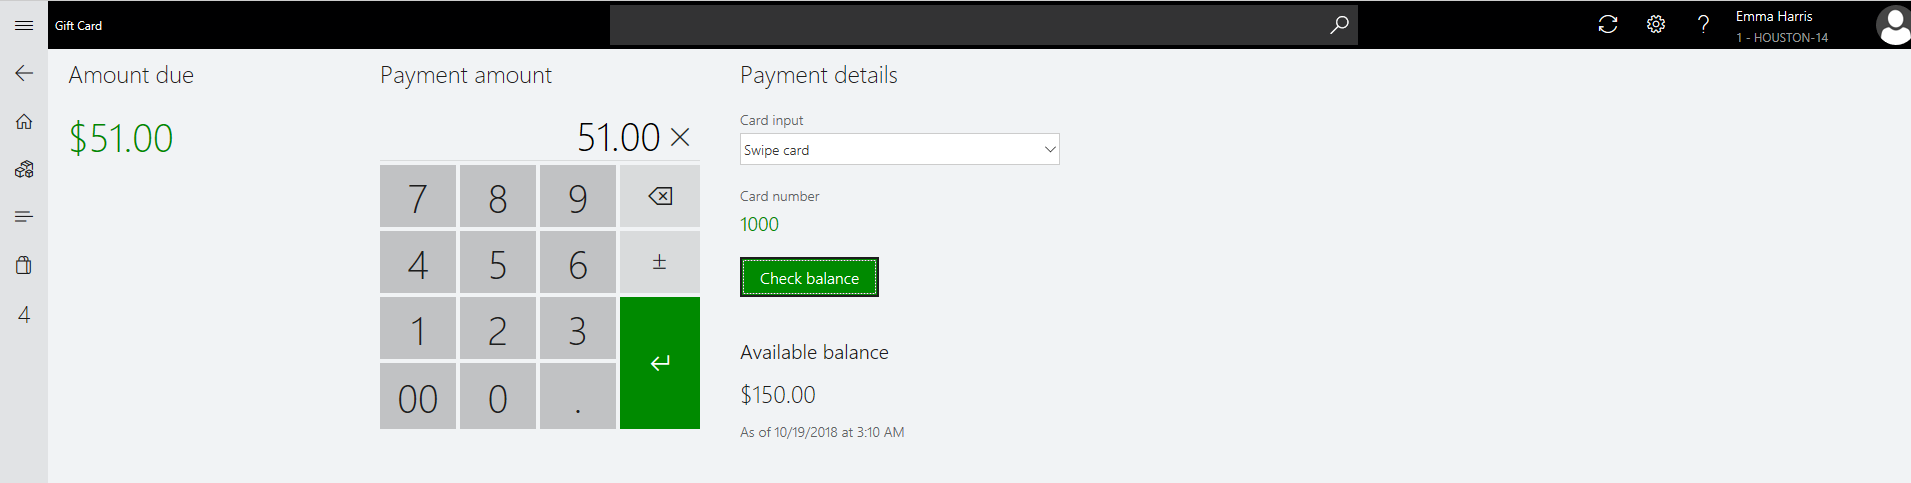 Dynamics 365 for Retail POS with Gift Card as the Payment Method